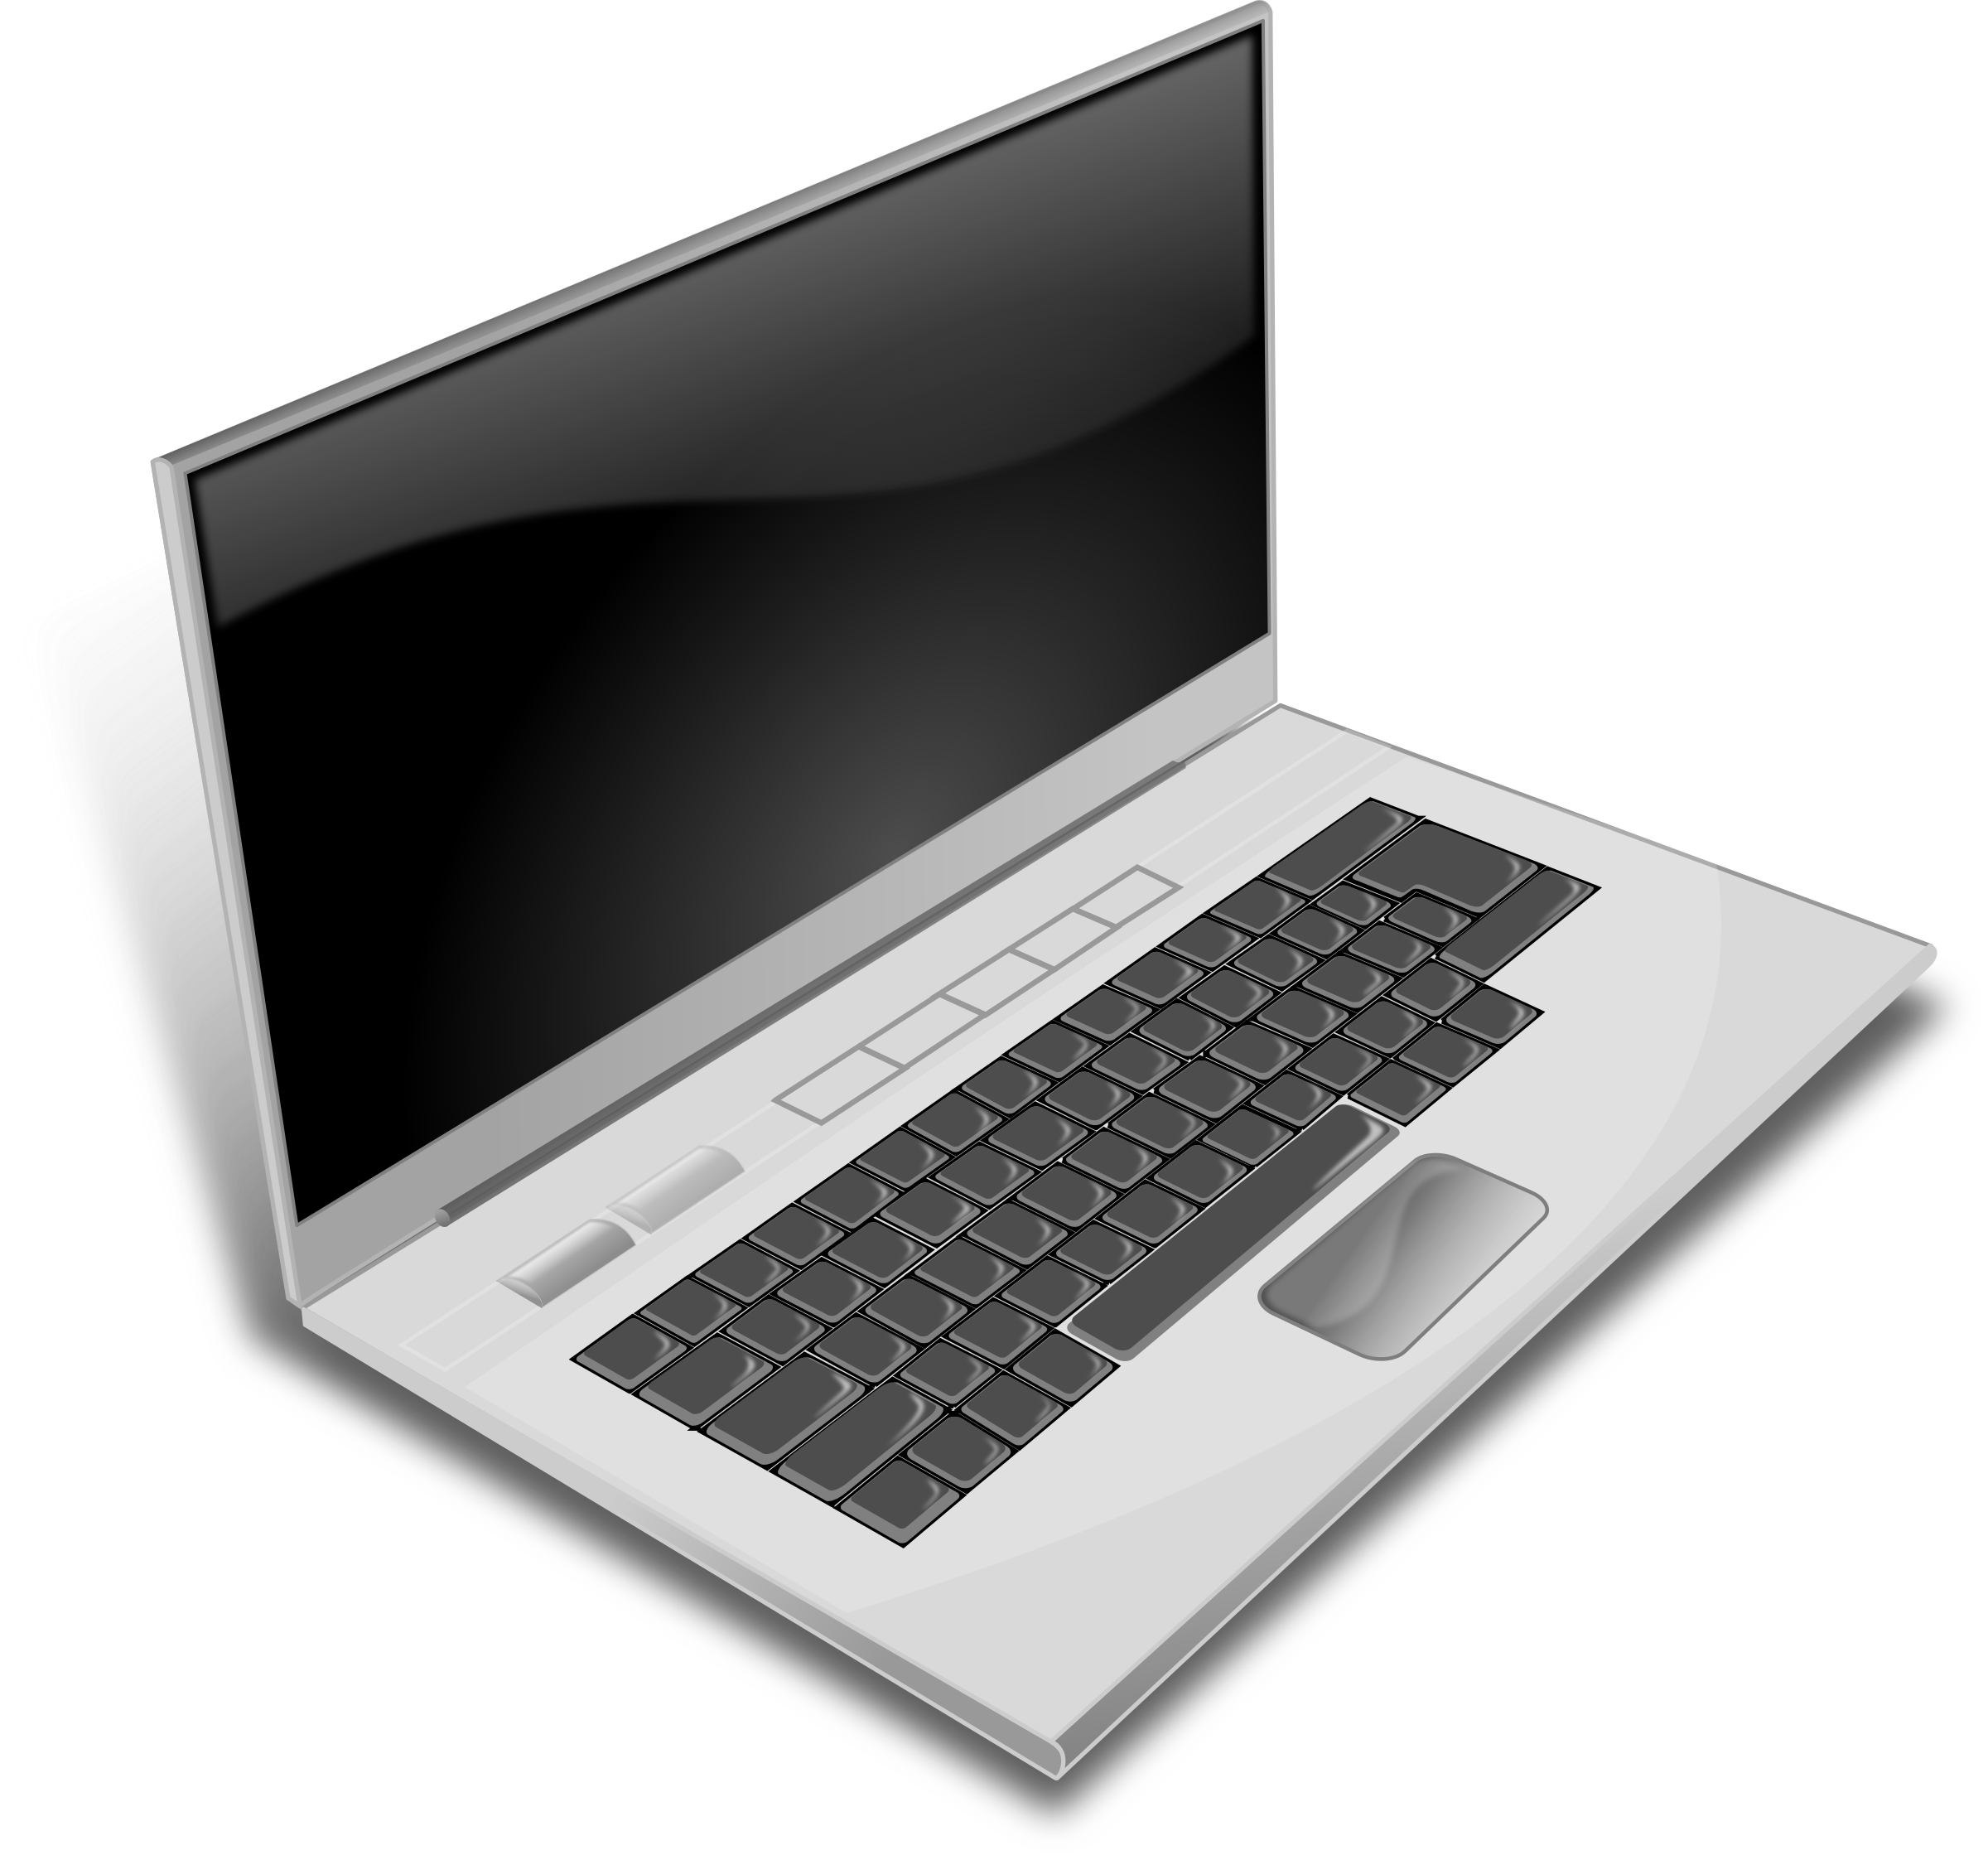 Clipart computer clear background. A gray laptop big